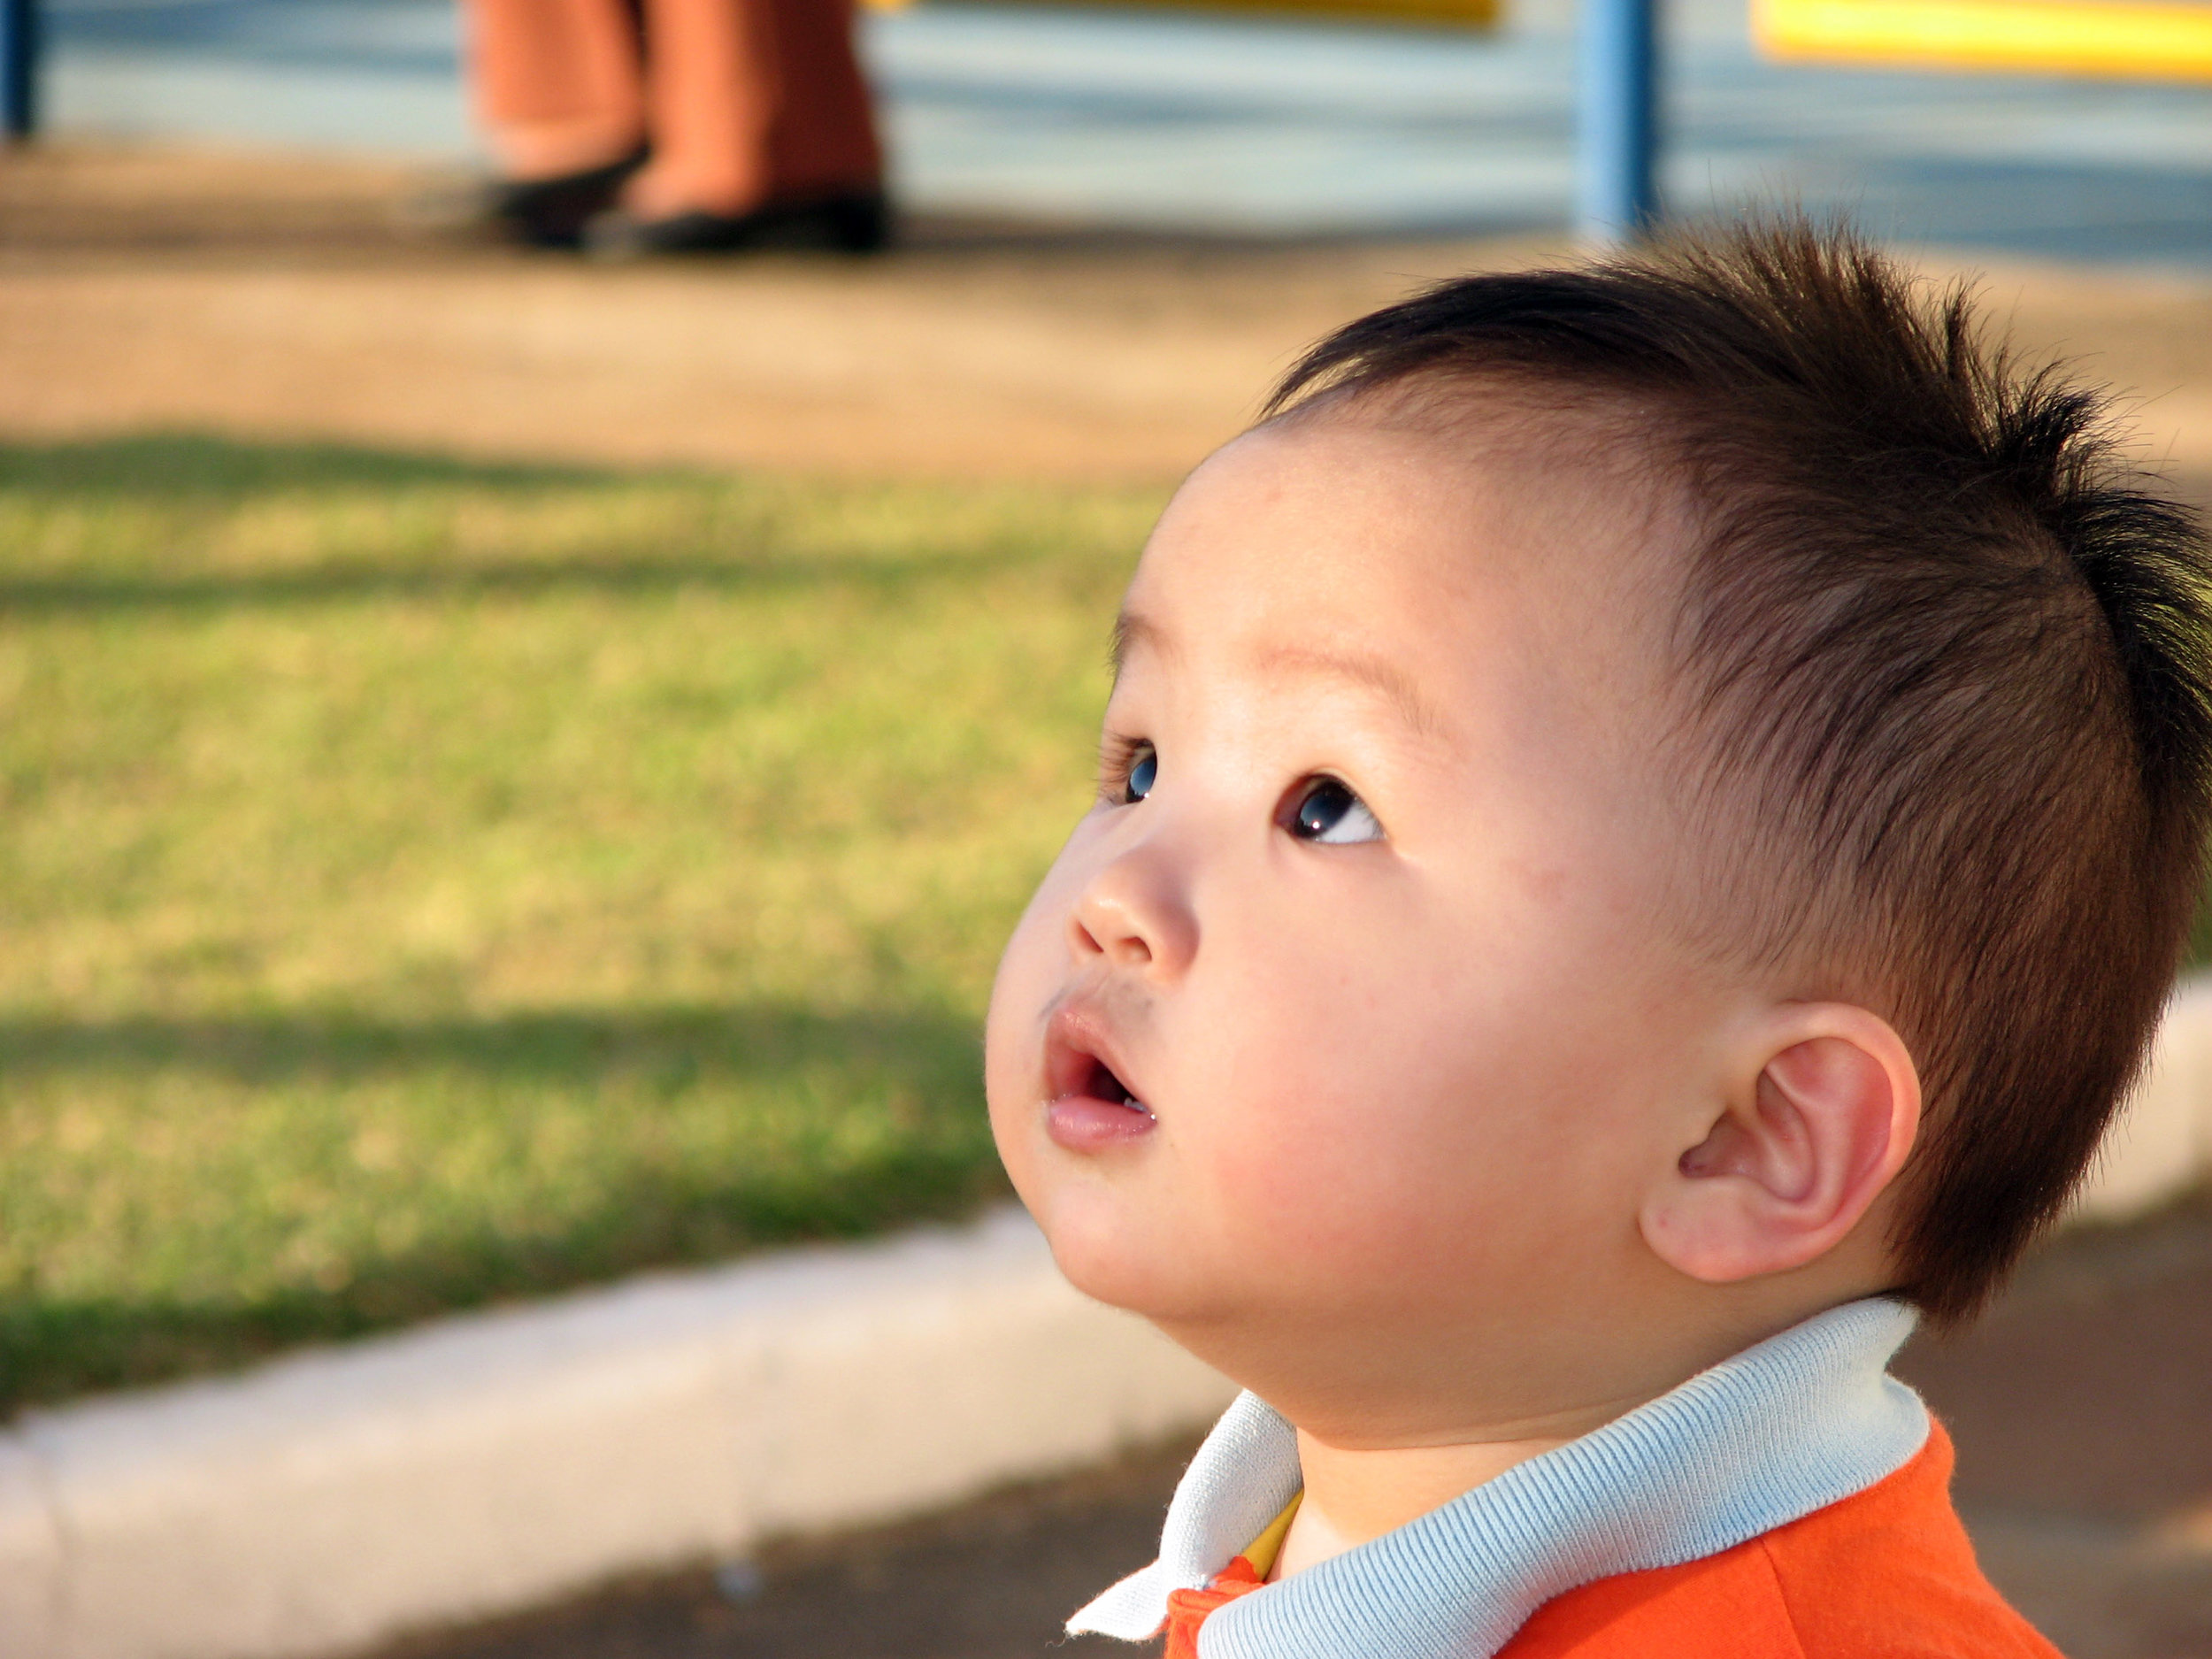 little-asian-boy-surprised-1432293.jpg